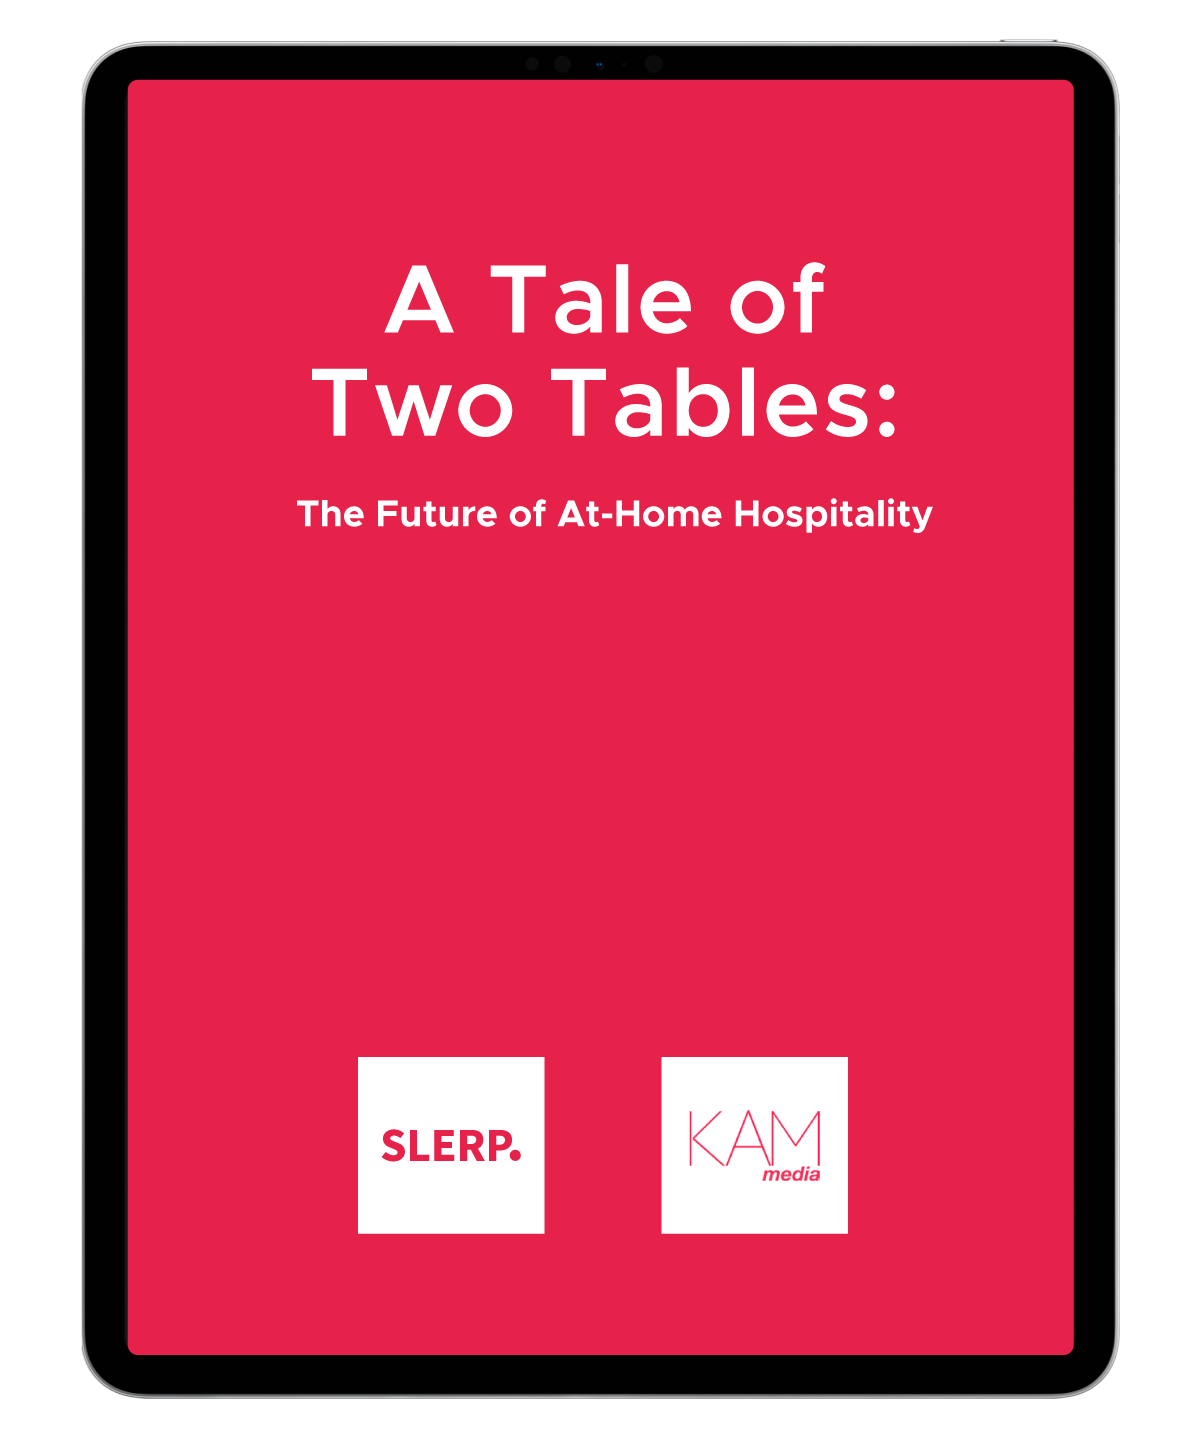 Slerp_A-Tale-of-Two-Tables11